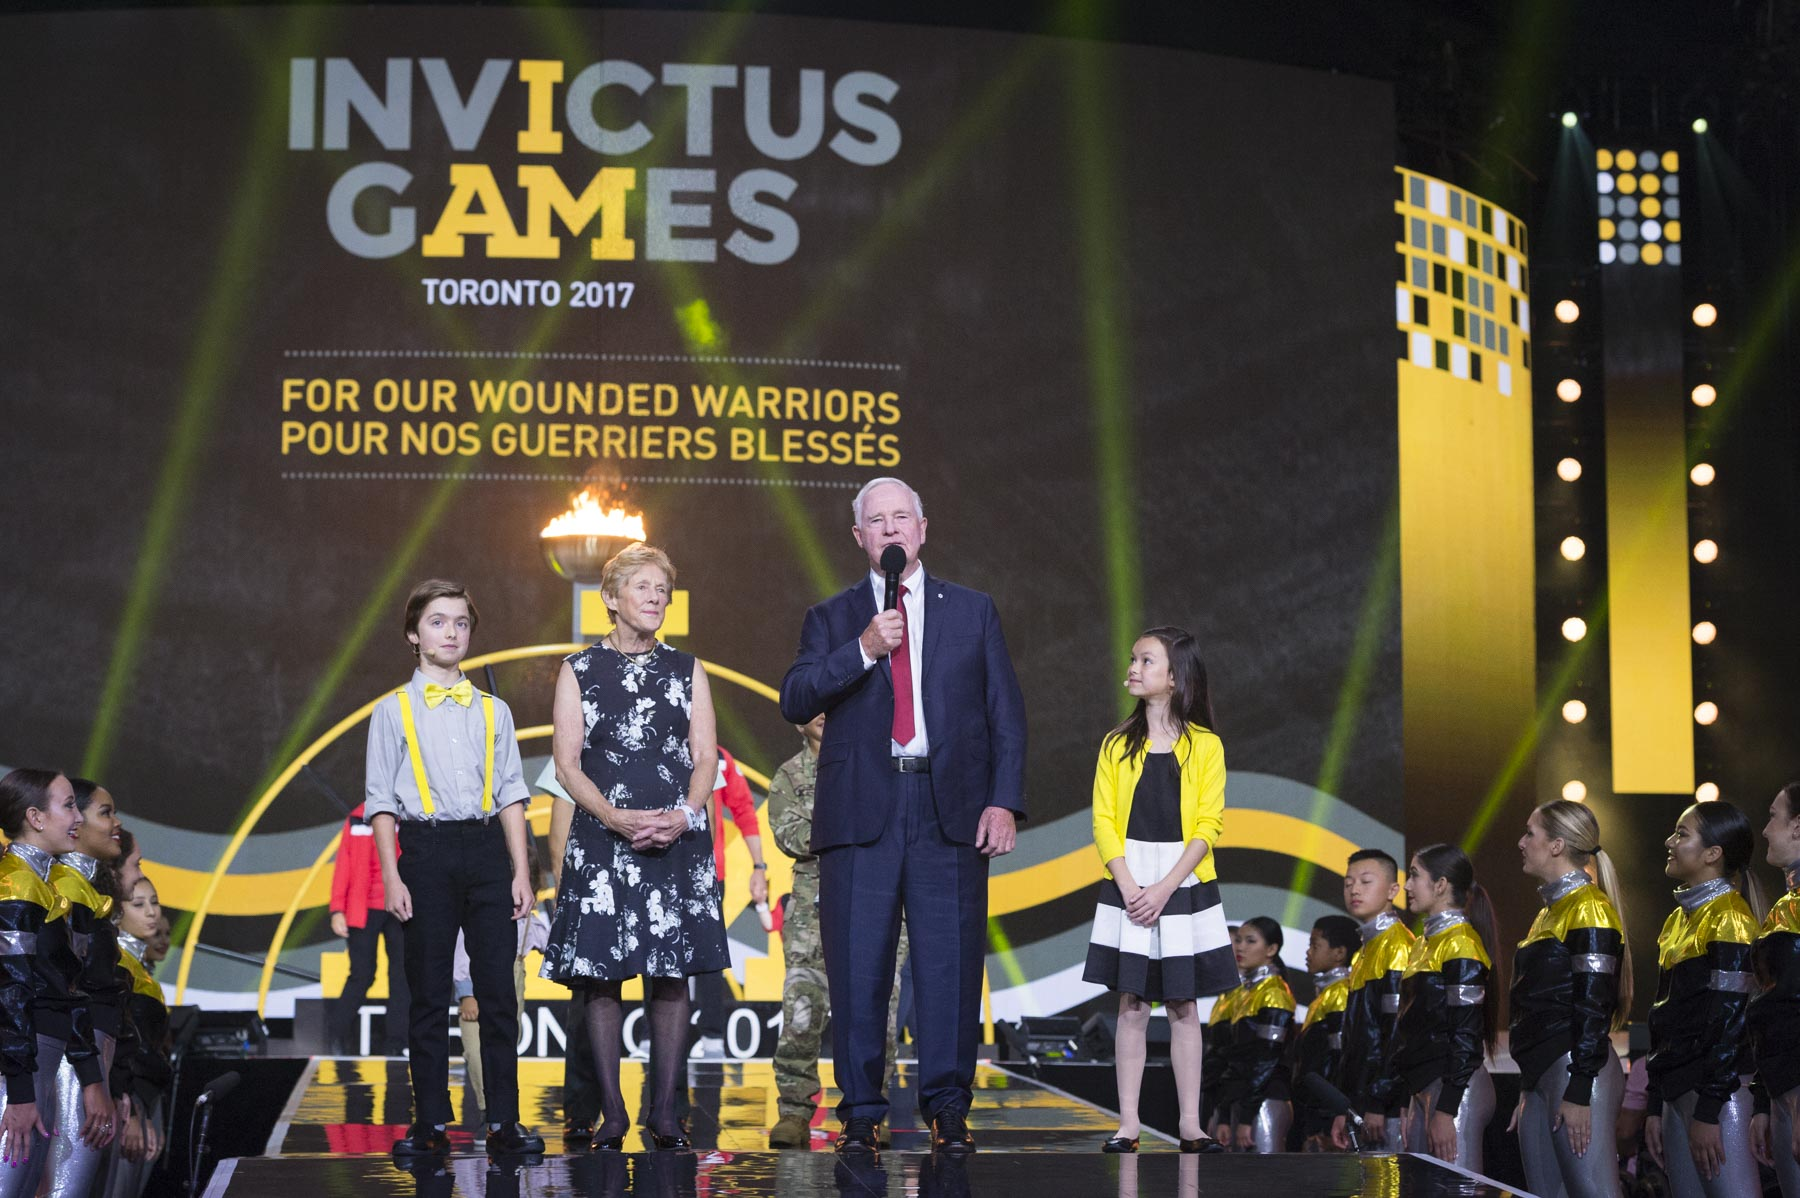 The Governor General had the great honour of officially opening the Invictus Games.